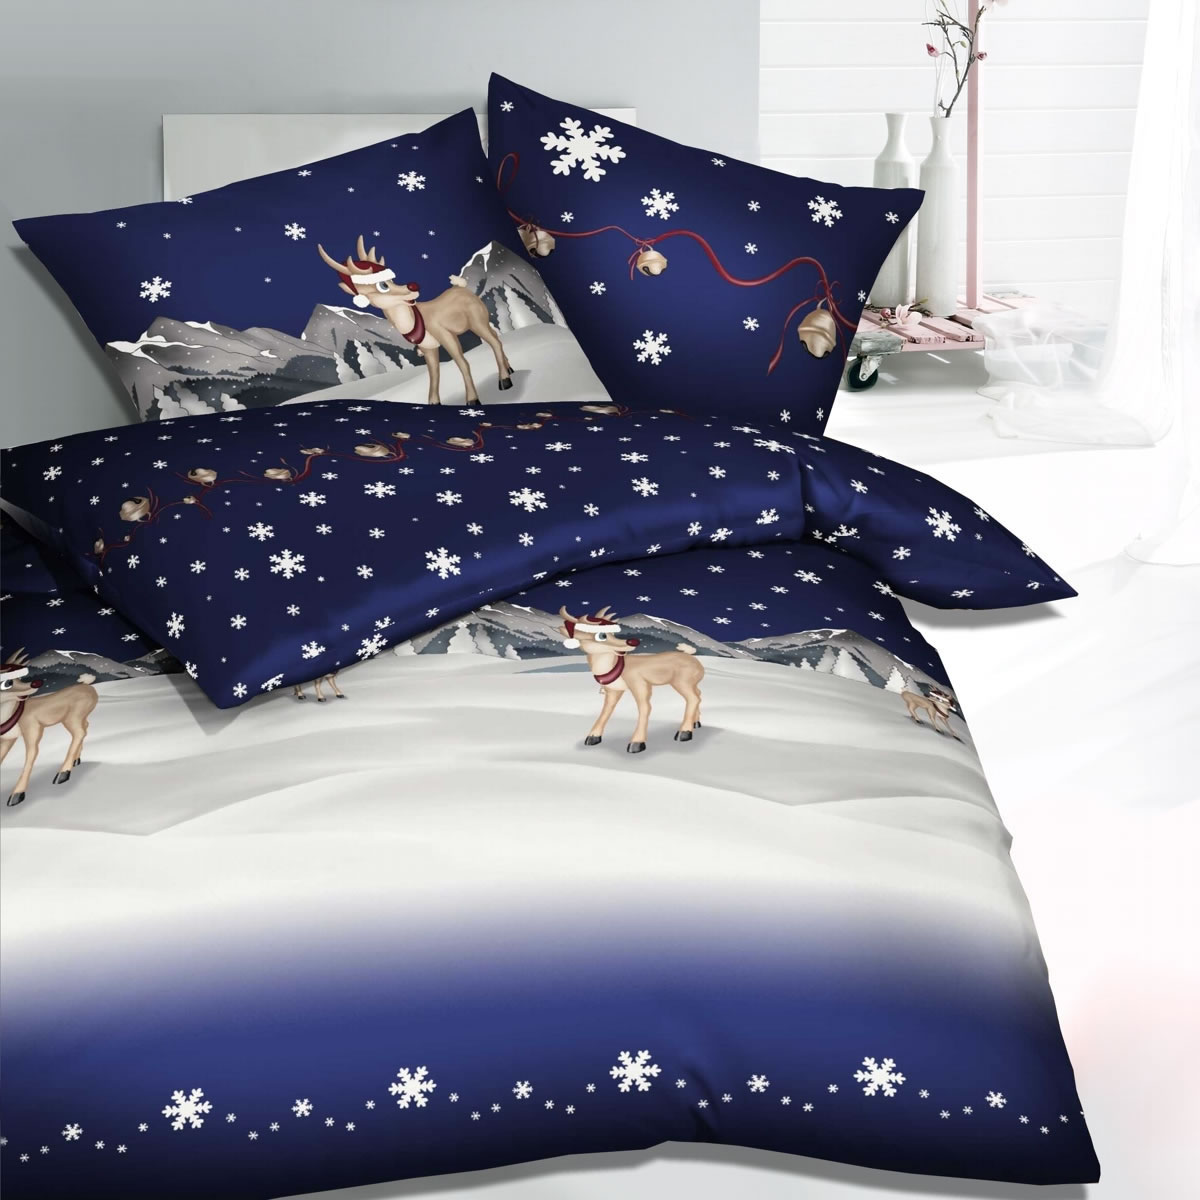 kaeppel biber bettw sche 155x220 cm design 3251 winterwonderland blau. Black Bedroom Furniture Sets. Home Design Ideas